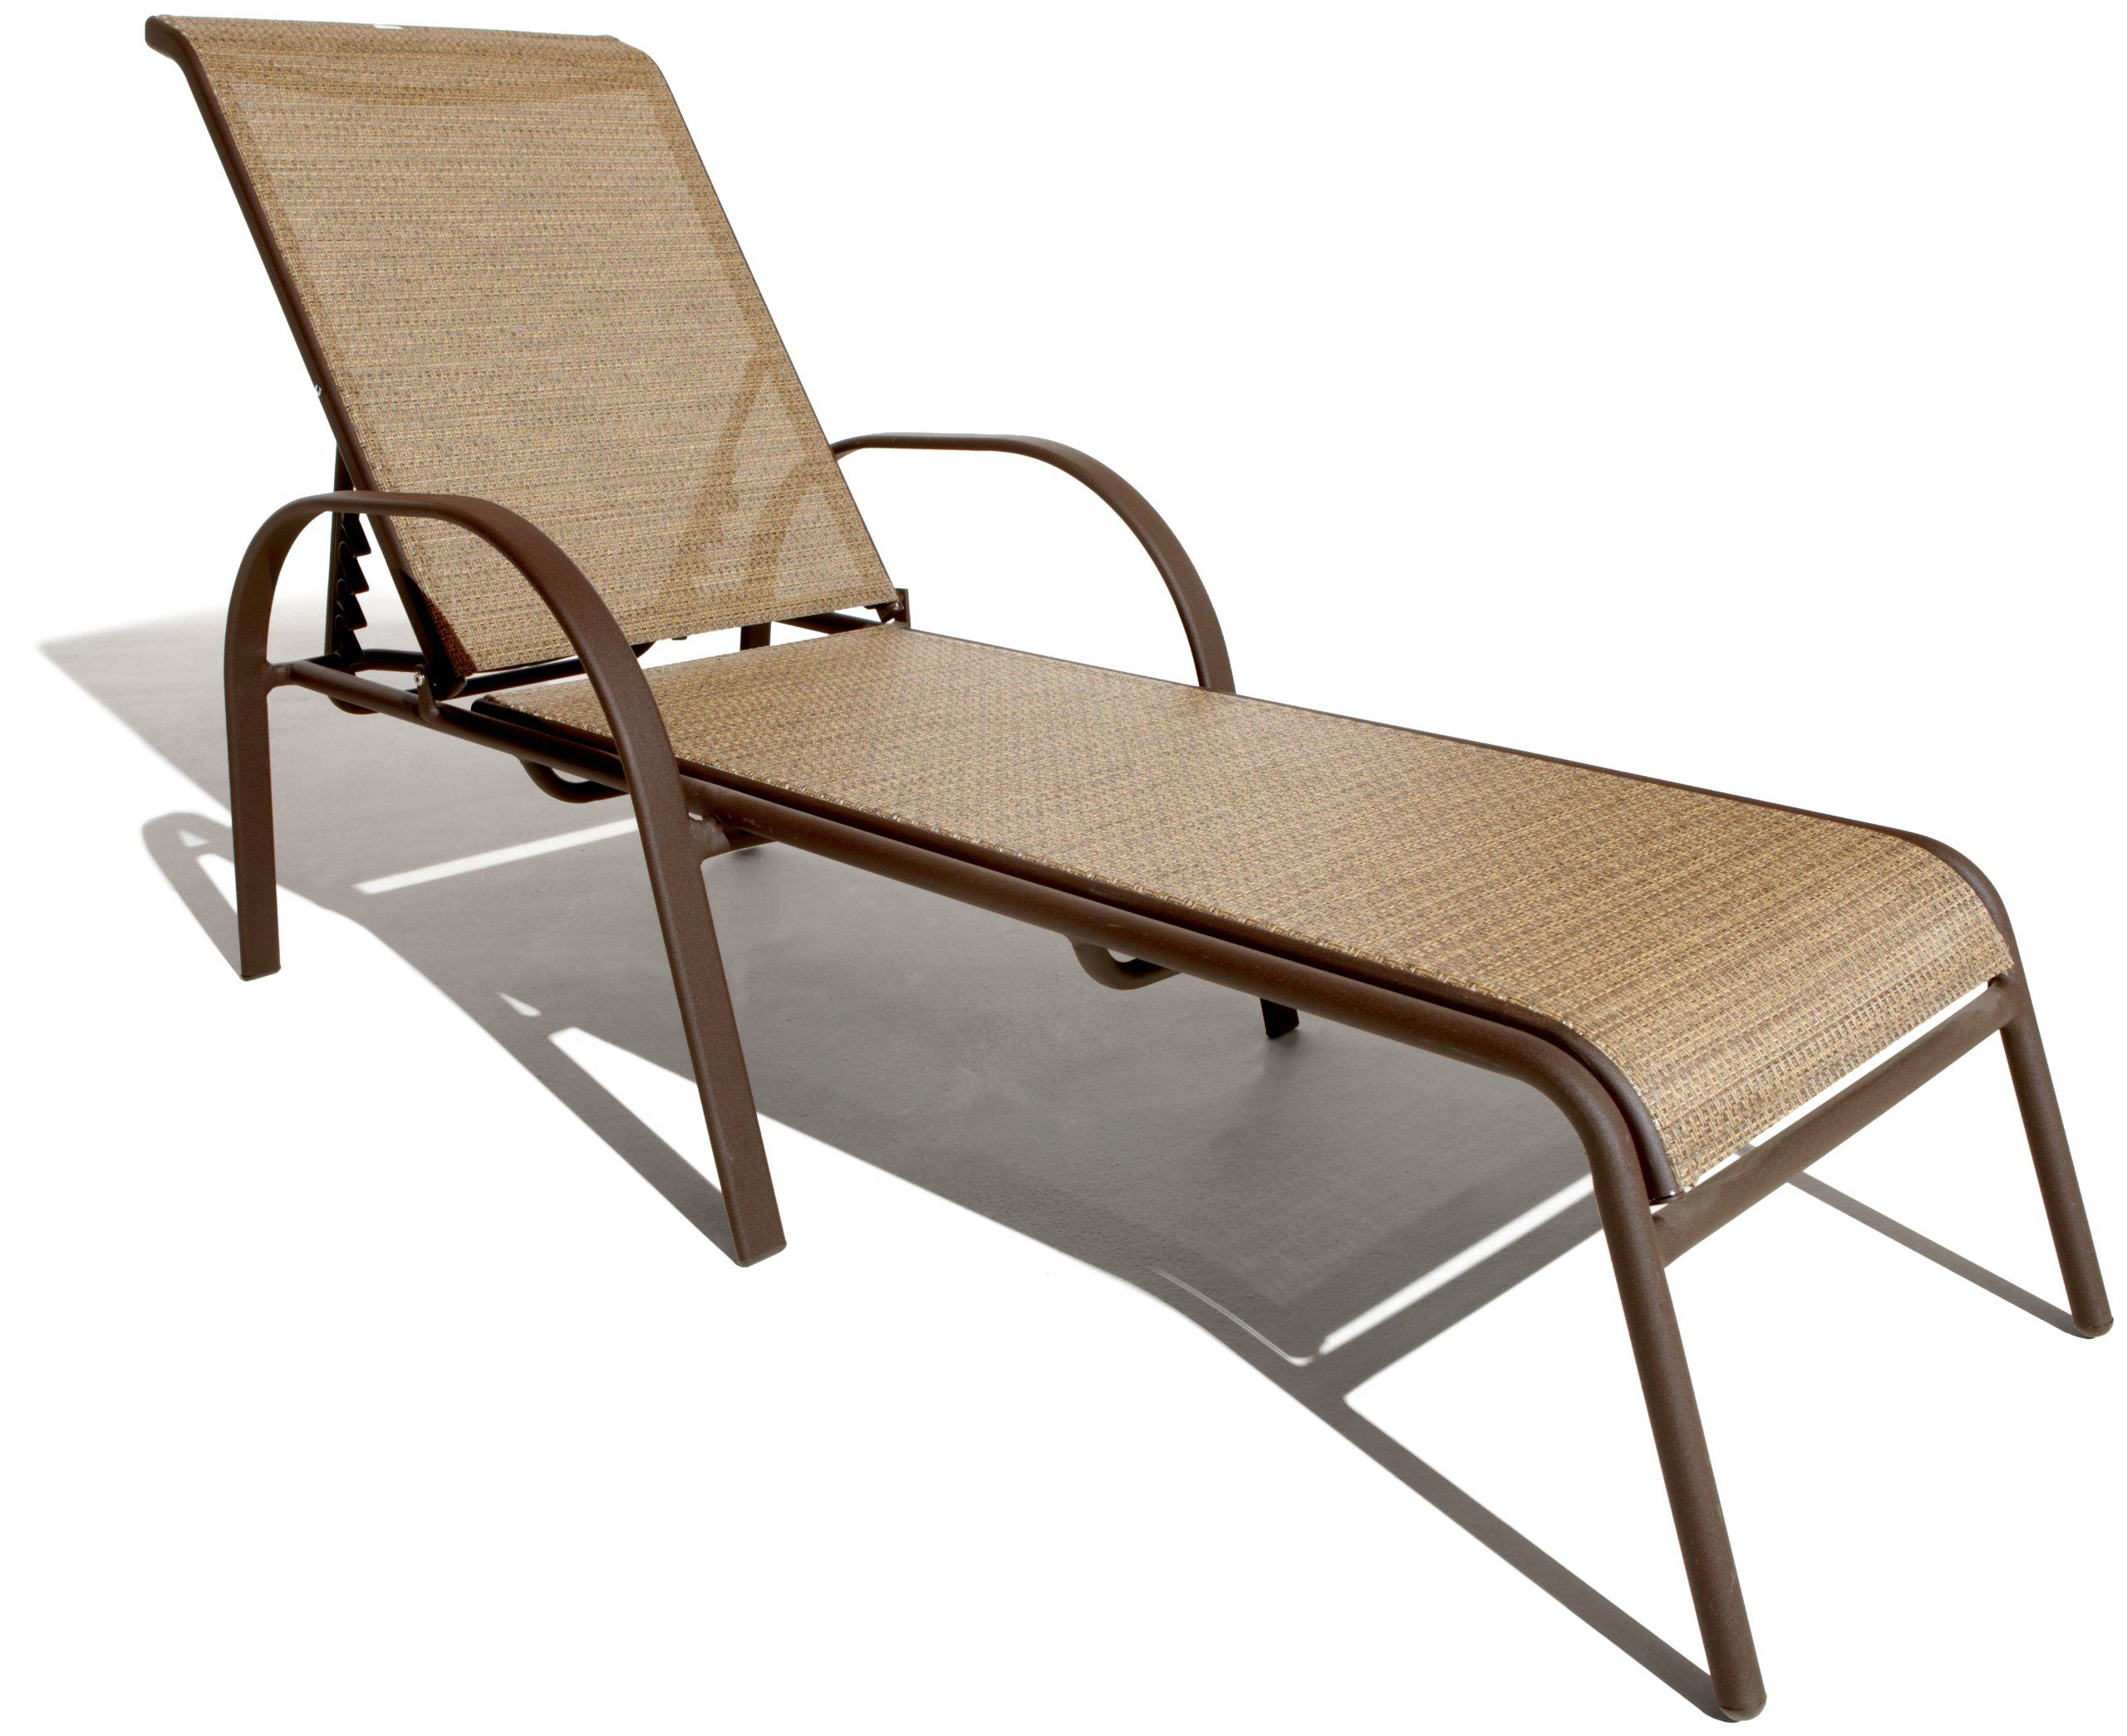 lounge chairs for patio. Amazon.com : Strathwood Rawley Textilene Chaise Lounge Chair 2 Pk Patio, Lawn \u0026 Garden Chairs For Patio S